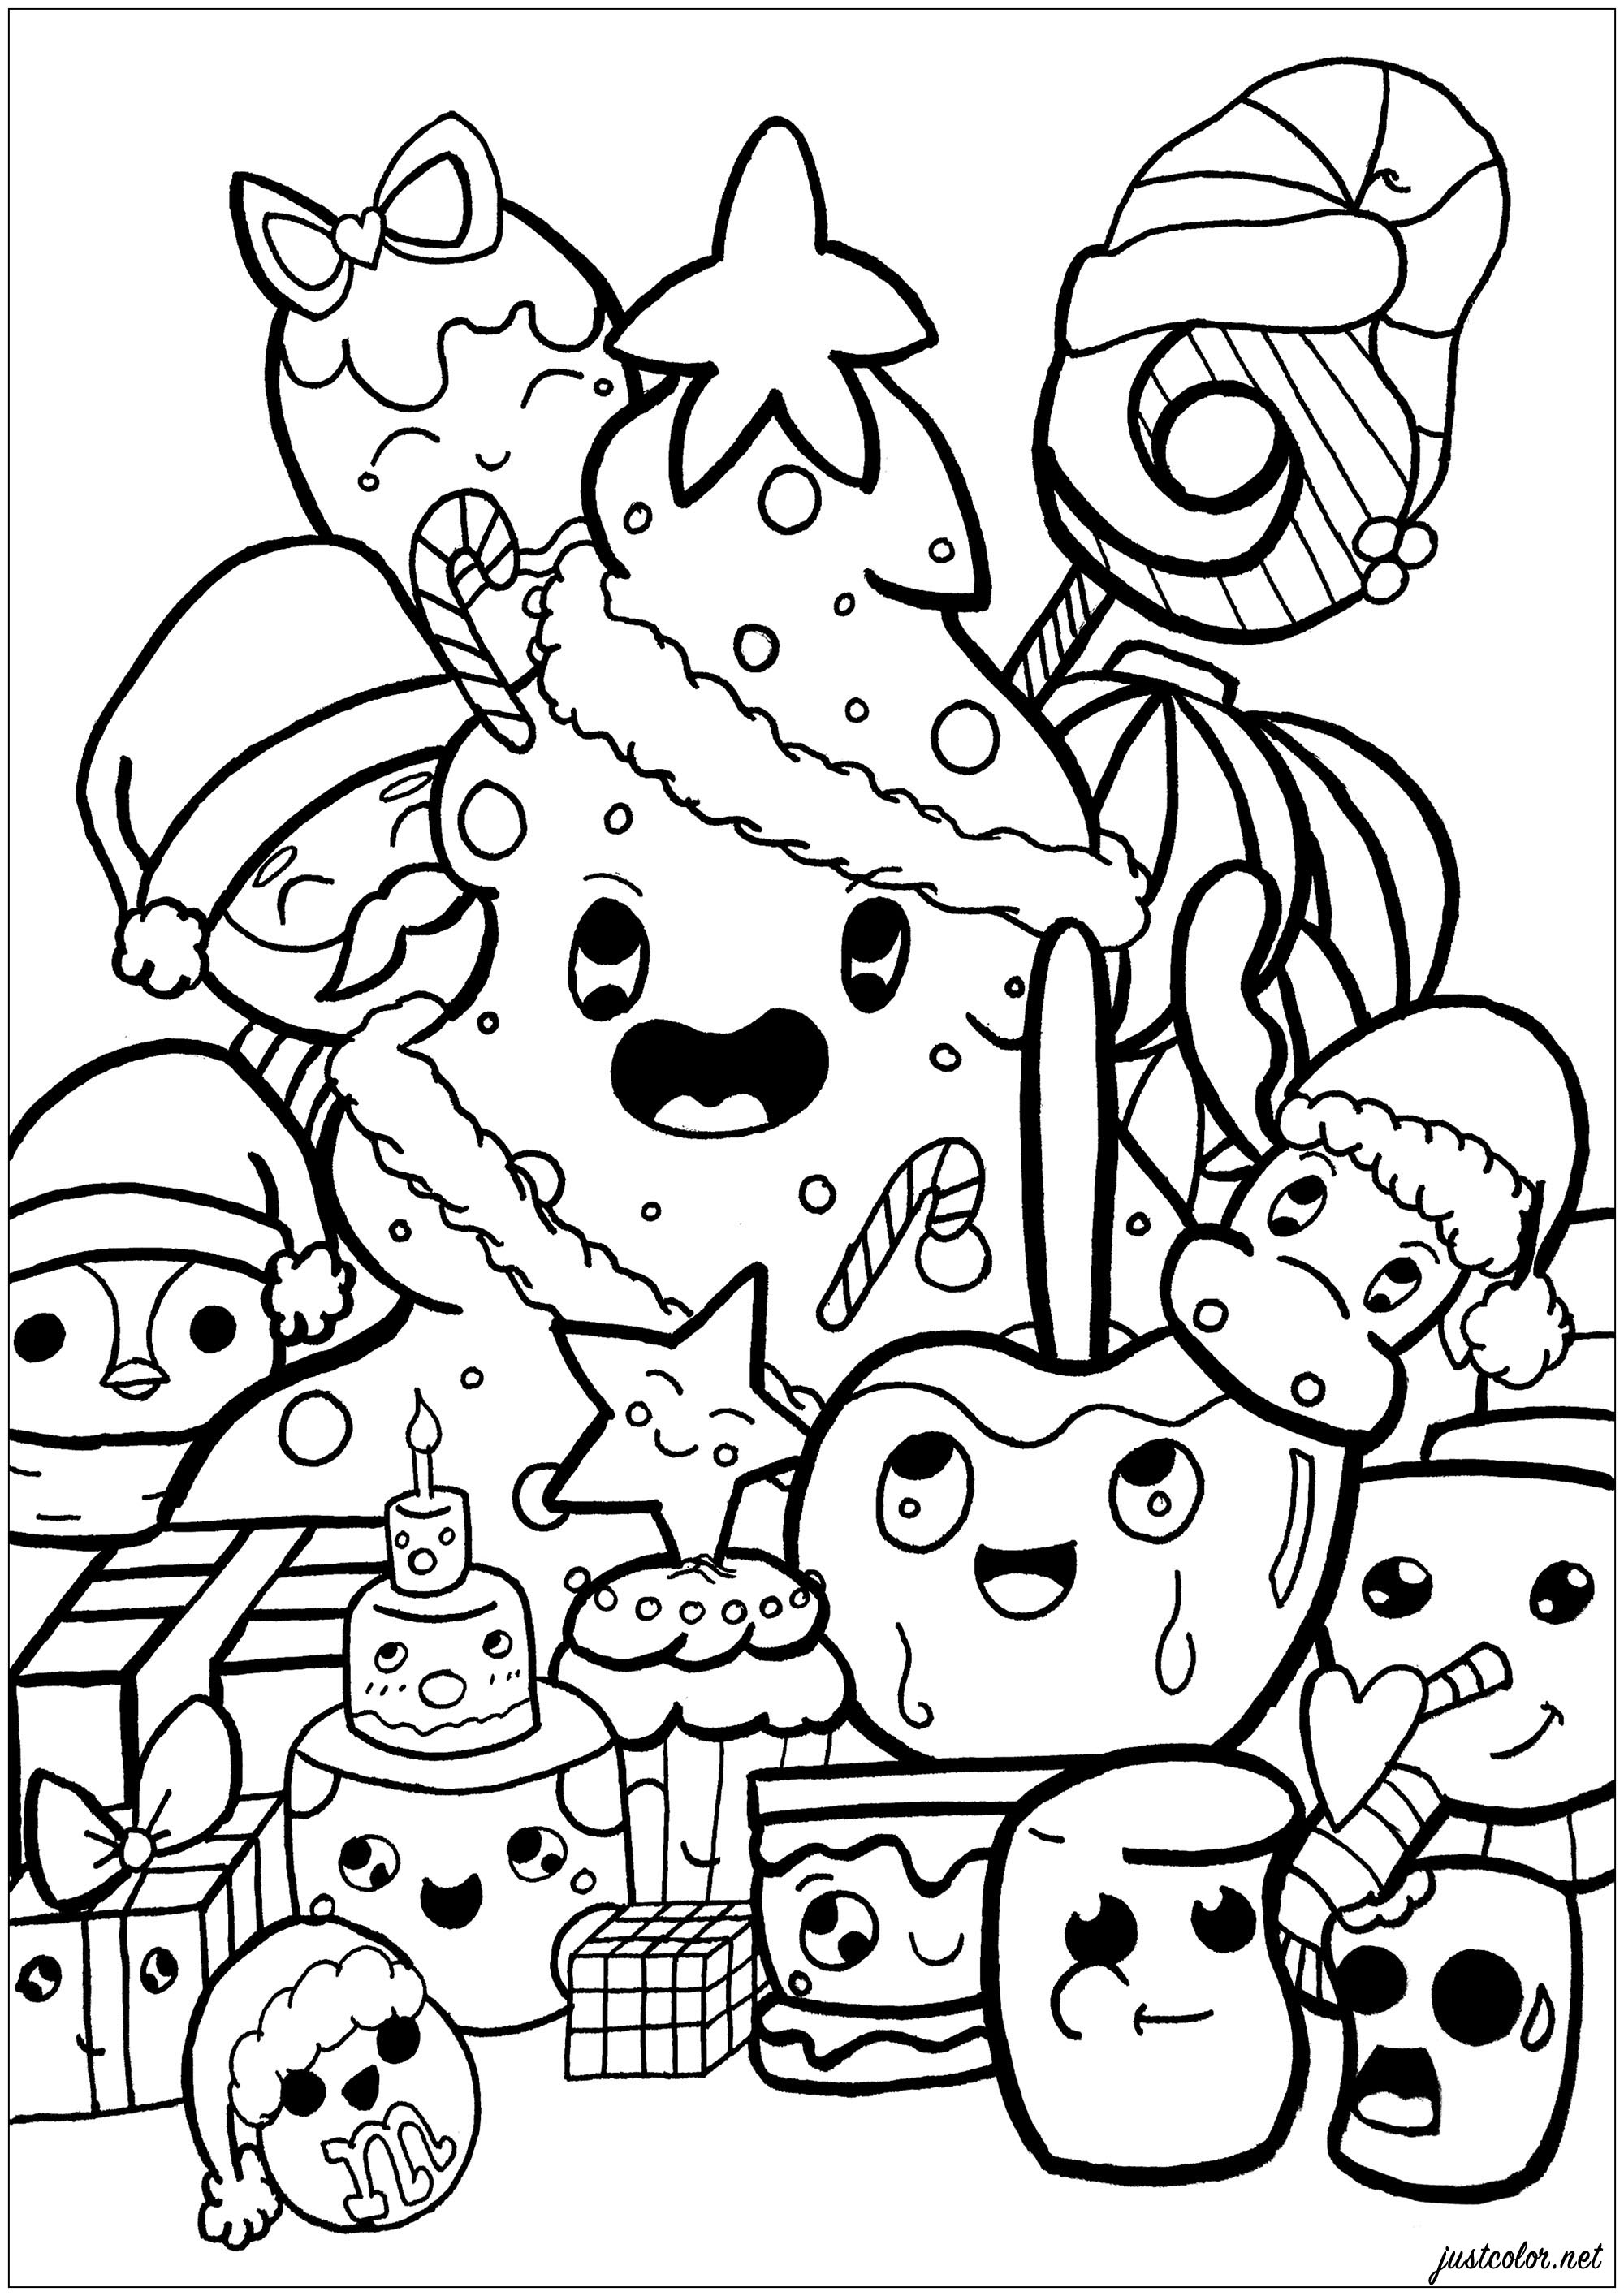 art coloring pages doodle art to print for free doodle art kids coloring pages art coloring pages